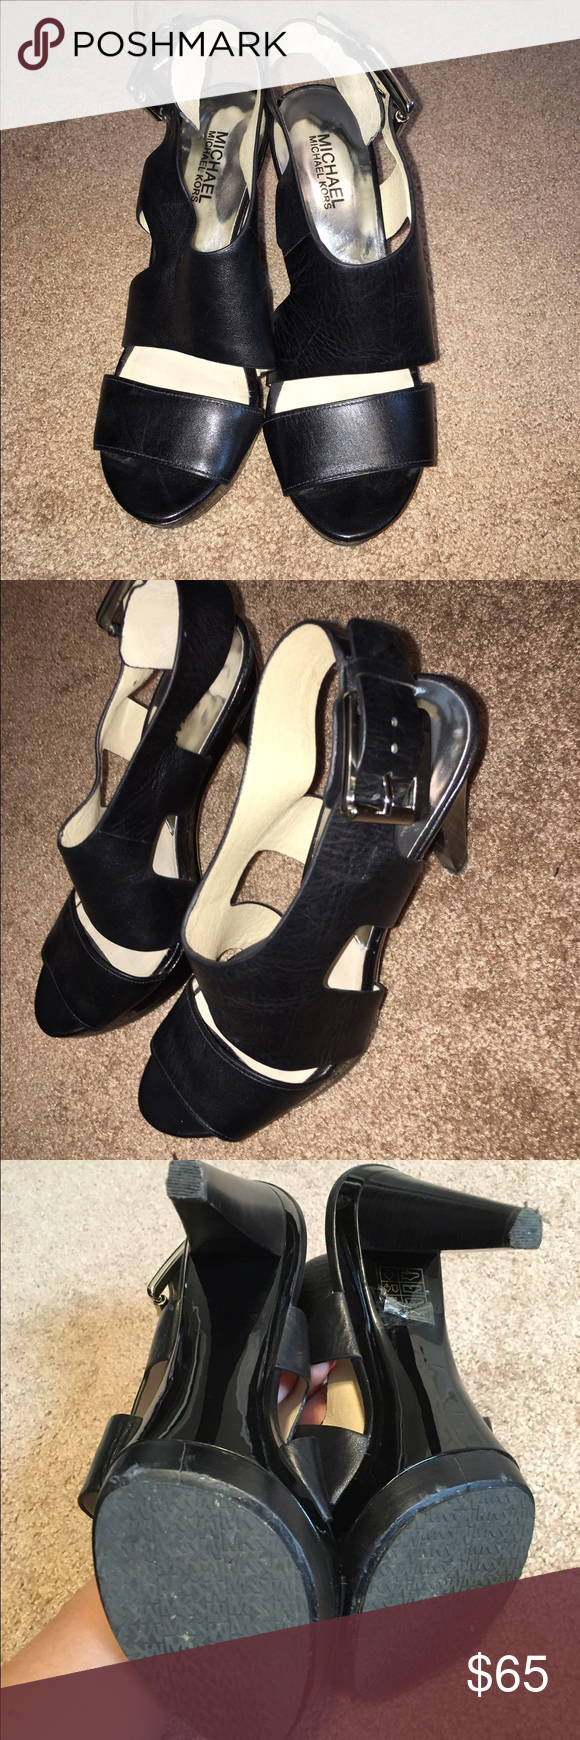 MICHAEL KORS HEELS MICHAEL KORS HEELS exact pair as the tan except in black. Only wore them 1 time. They are awesome. !!! 4 inch heel. With sole it's 4 1/2❤️❤️ Michael Kors Shoes